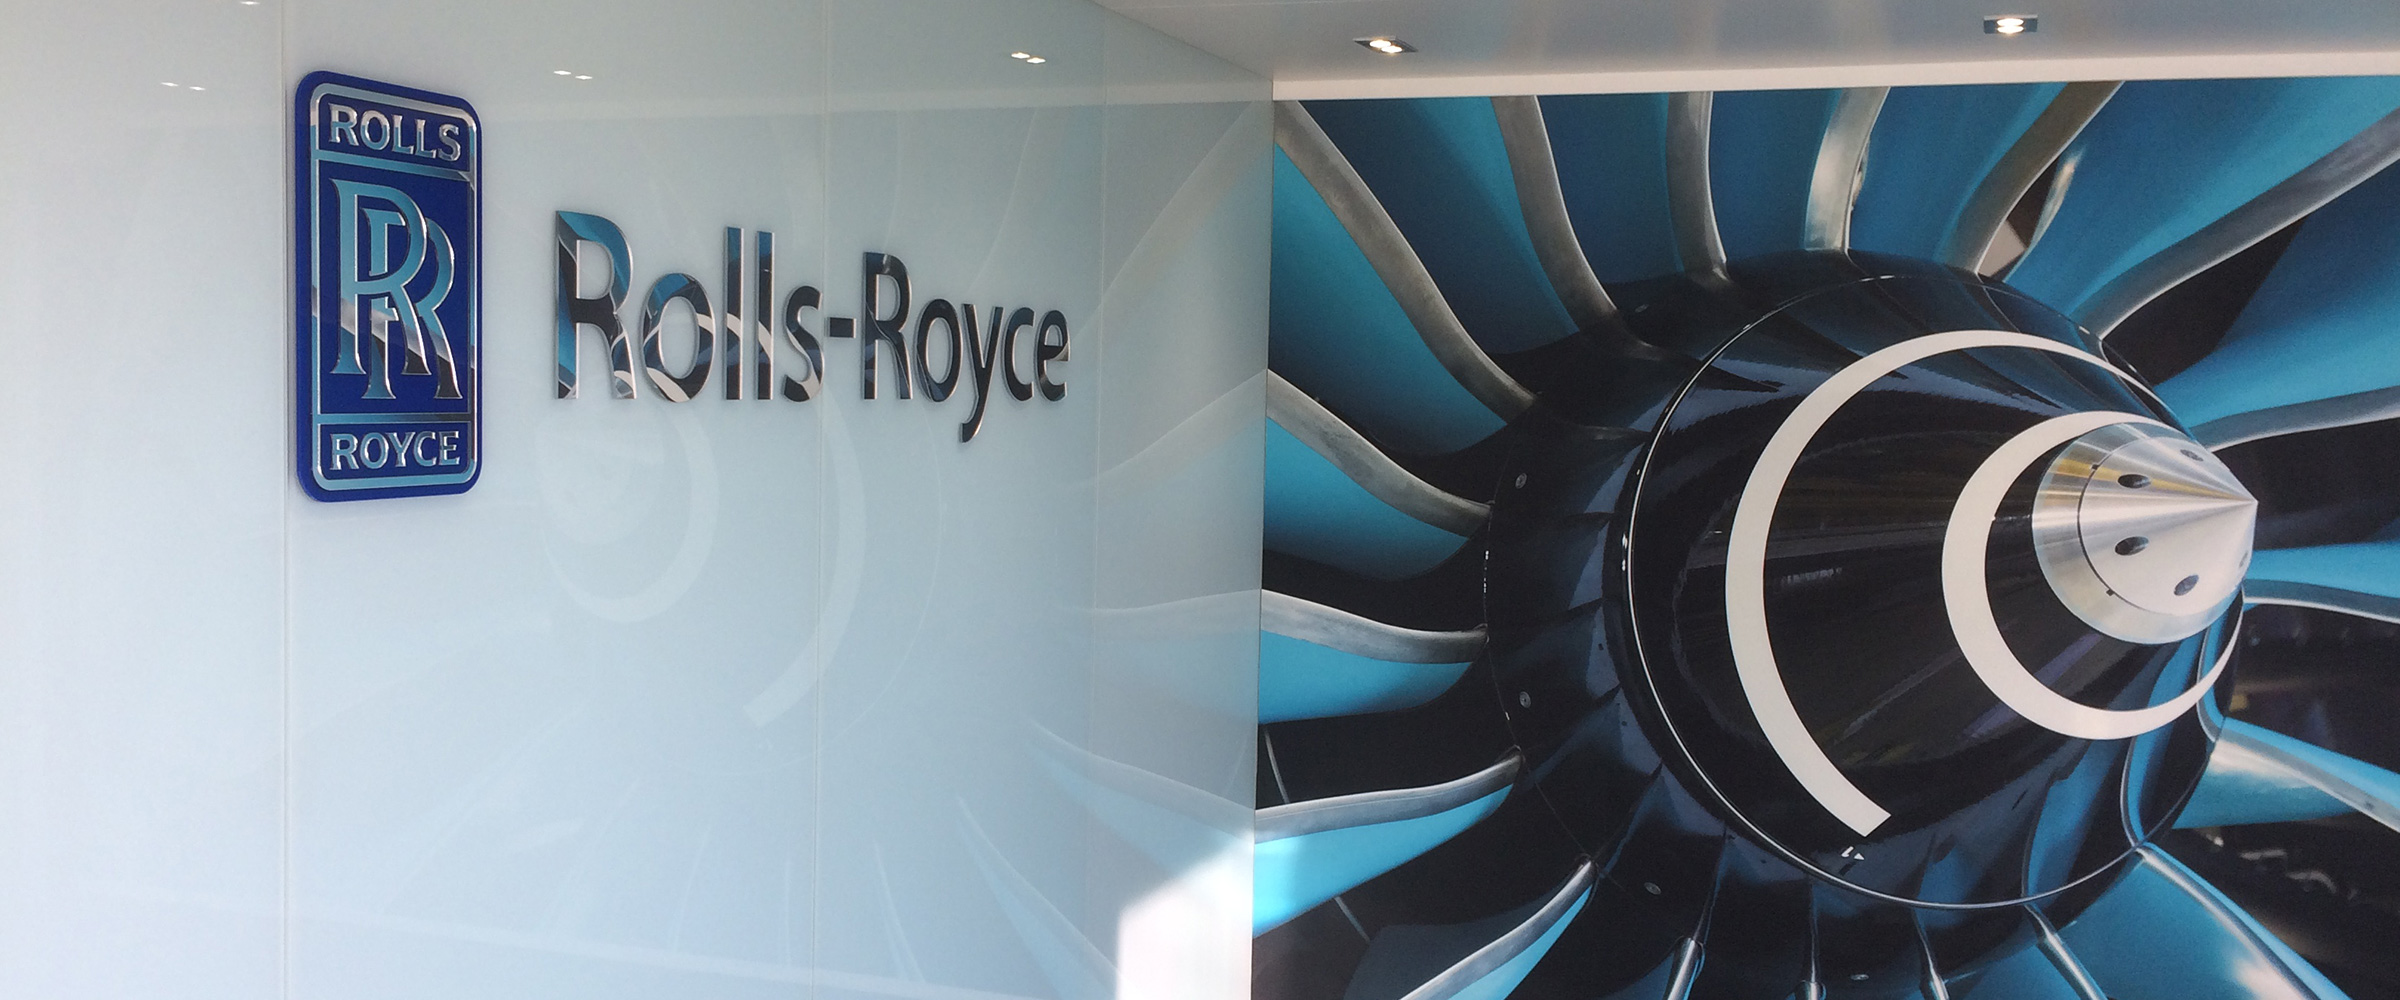 Rolls Royce structure produced and installed by Rocket Graphics